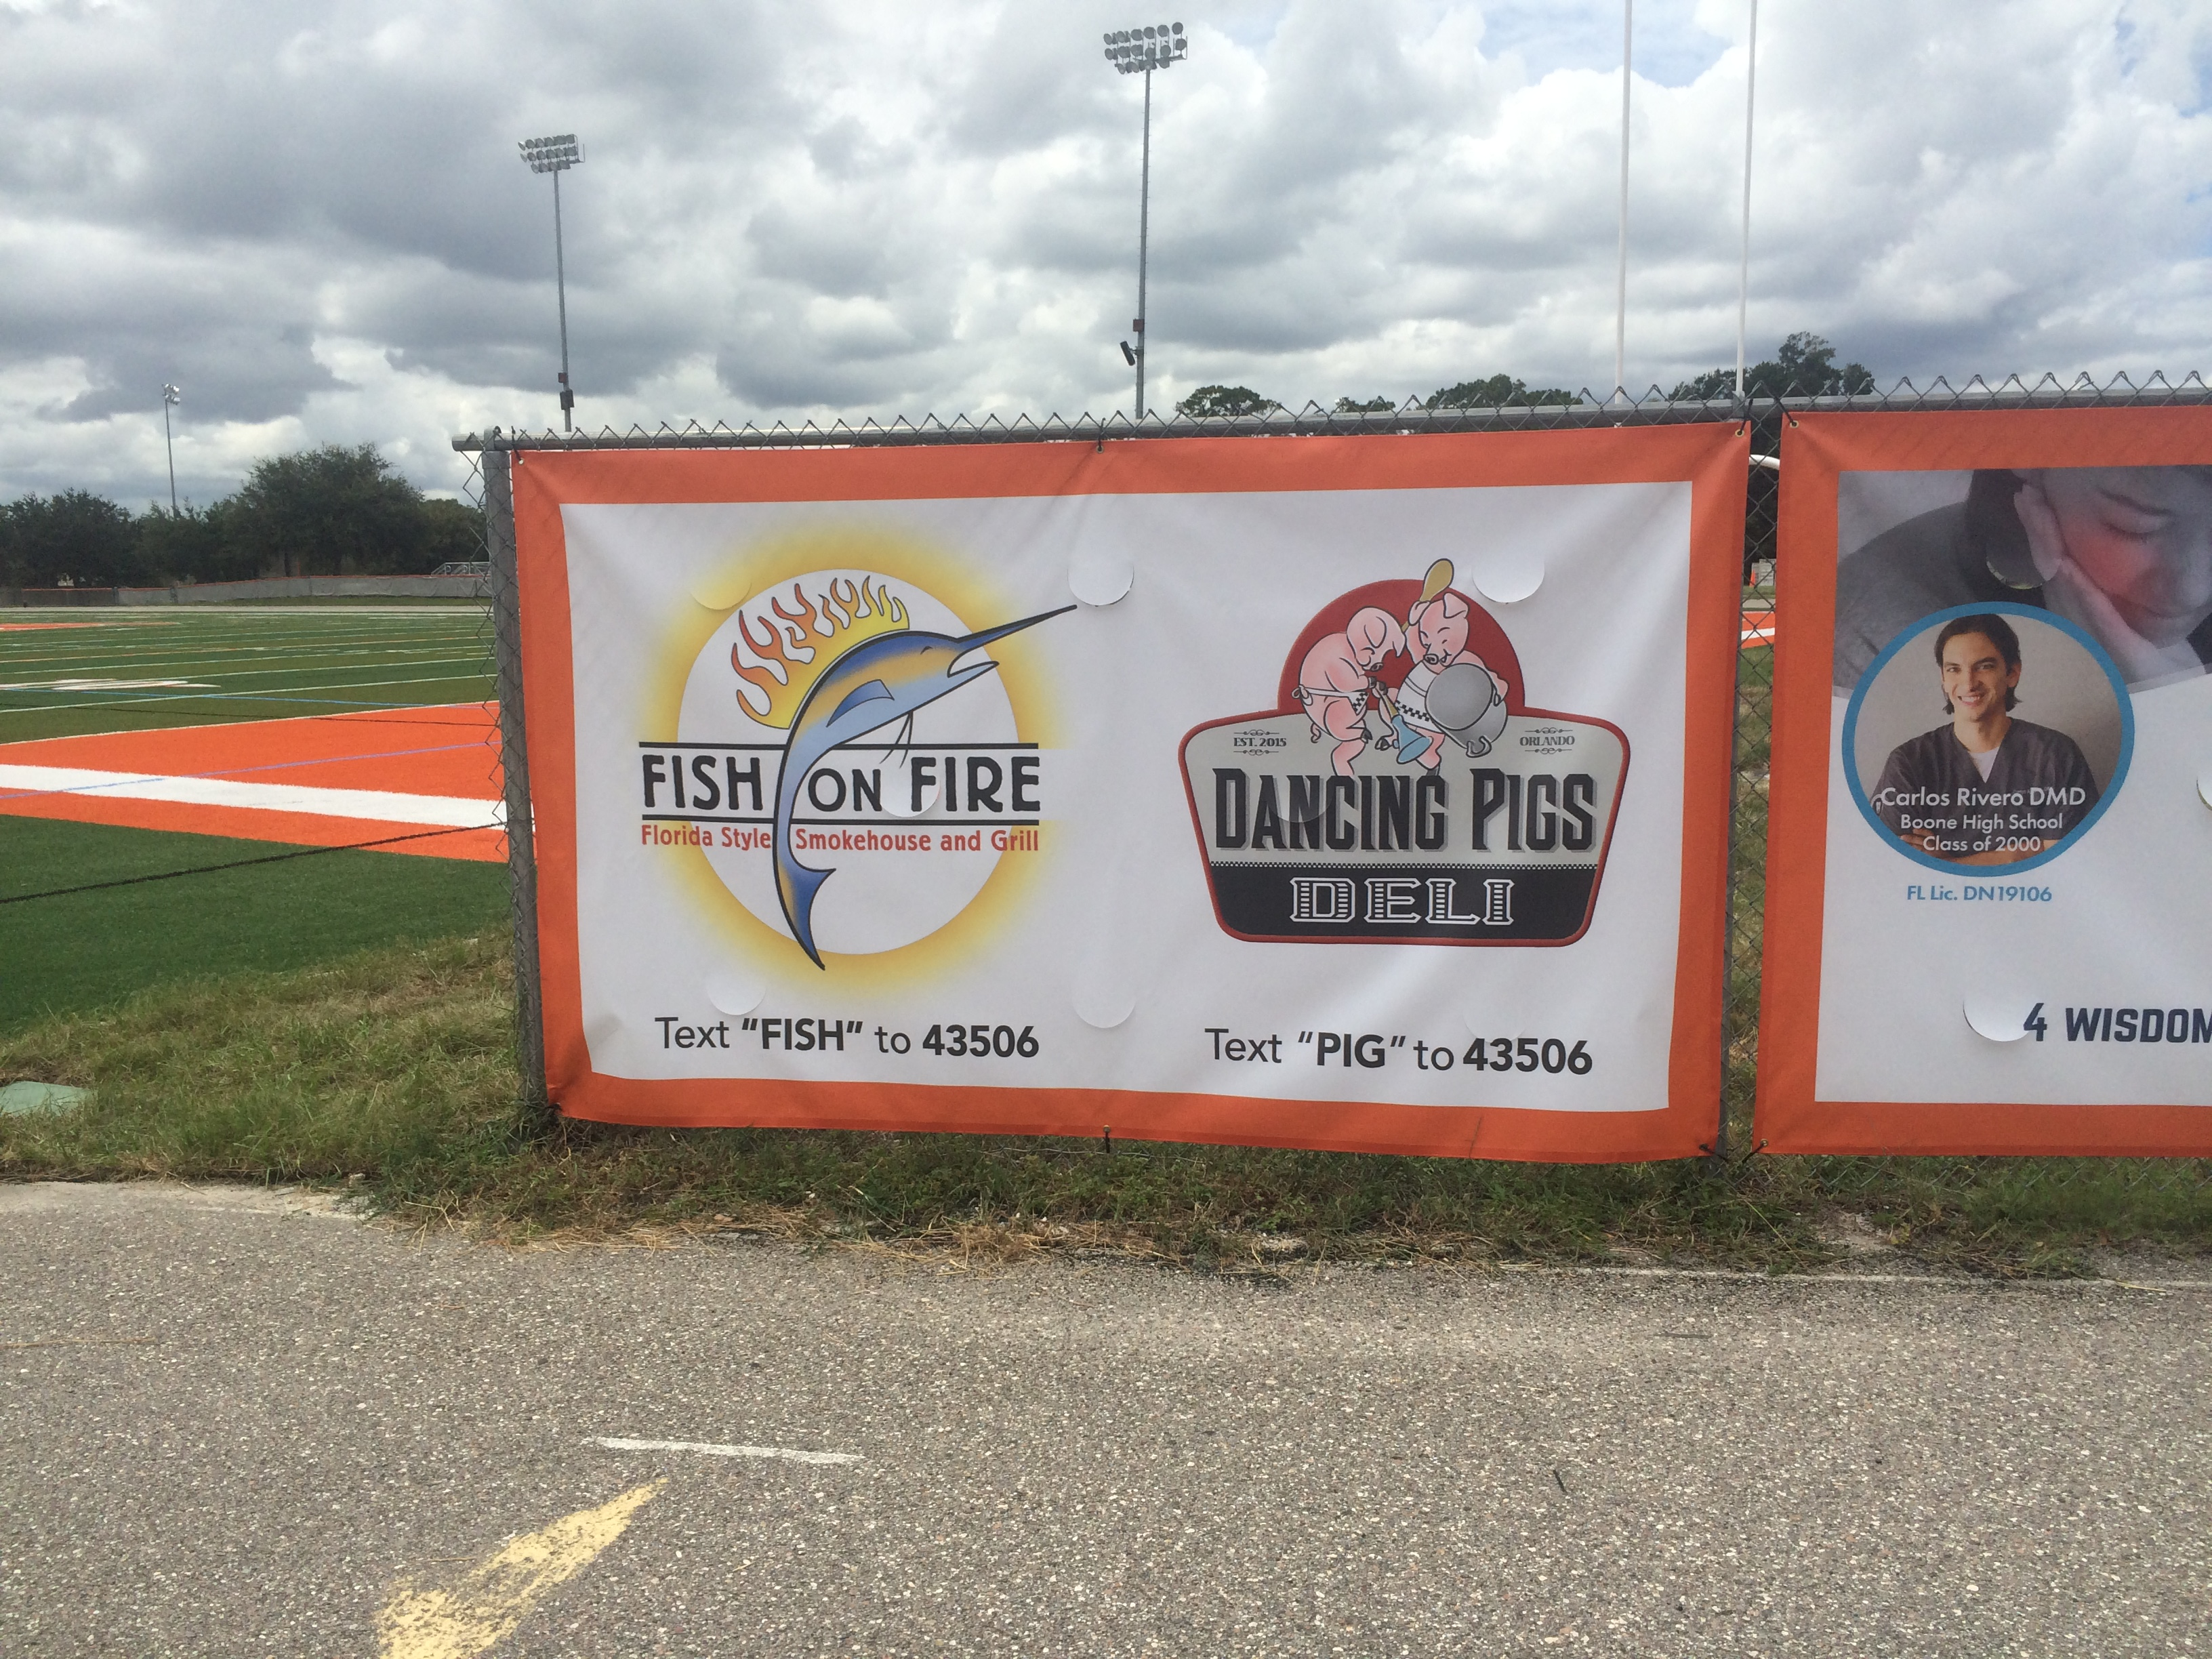 Fish on Fire & Dancing Pigs Deli Sponsorship Banner